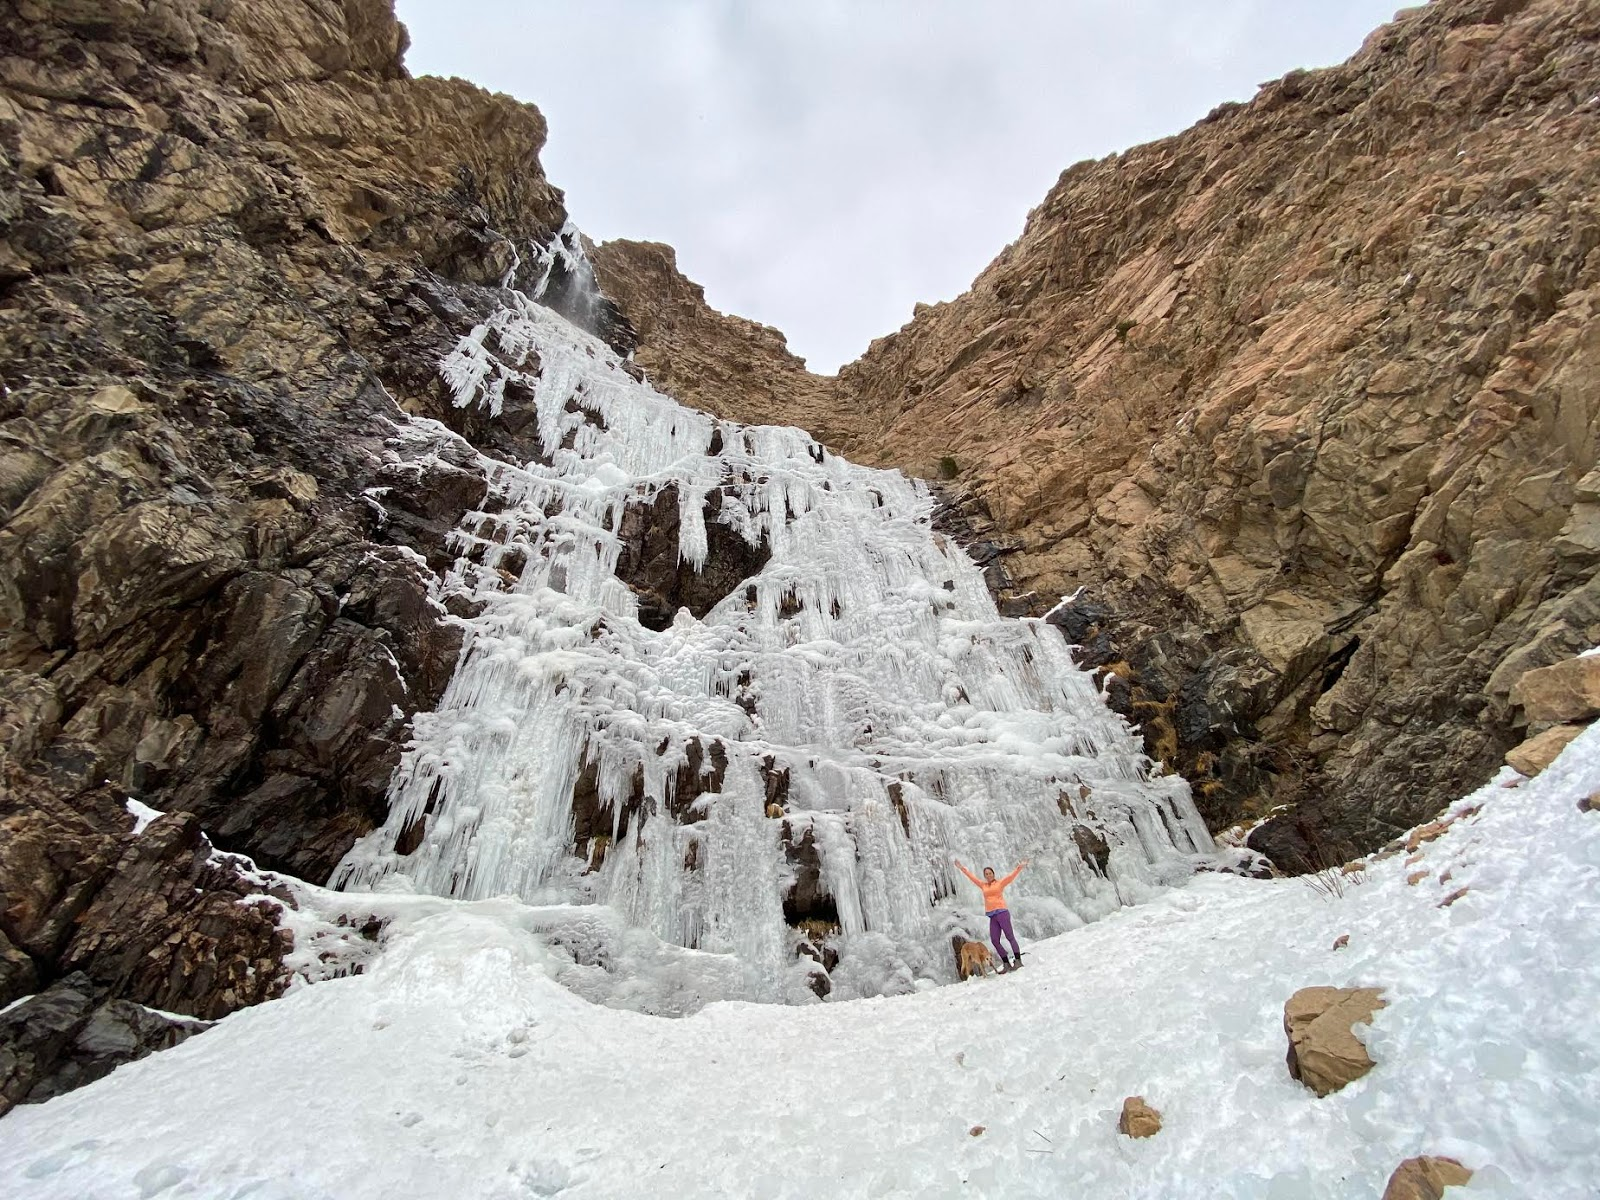 Hiking Waterfall Canyon in Ogden, Utah, Hiking in Utah with Dogs, Frozen Waterfalls in Utah, Ogden BST Christmas Tree